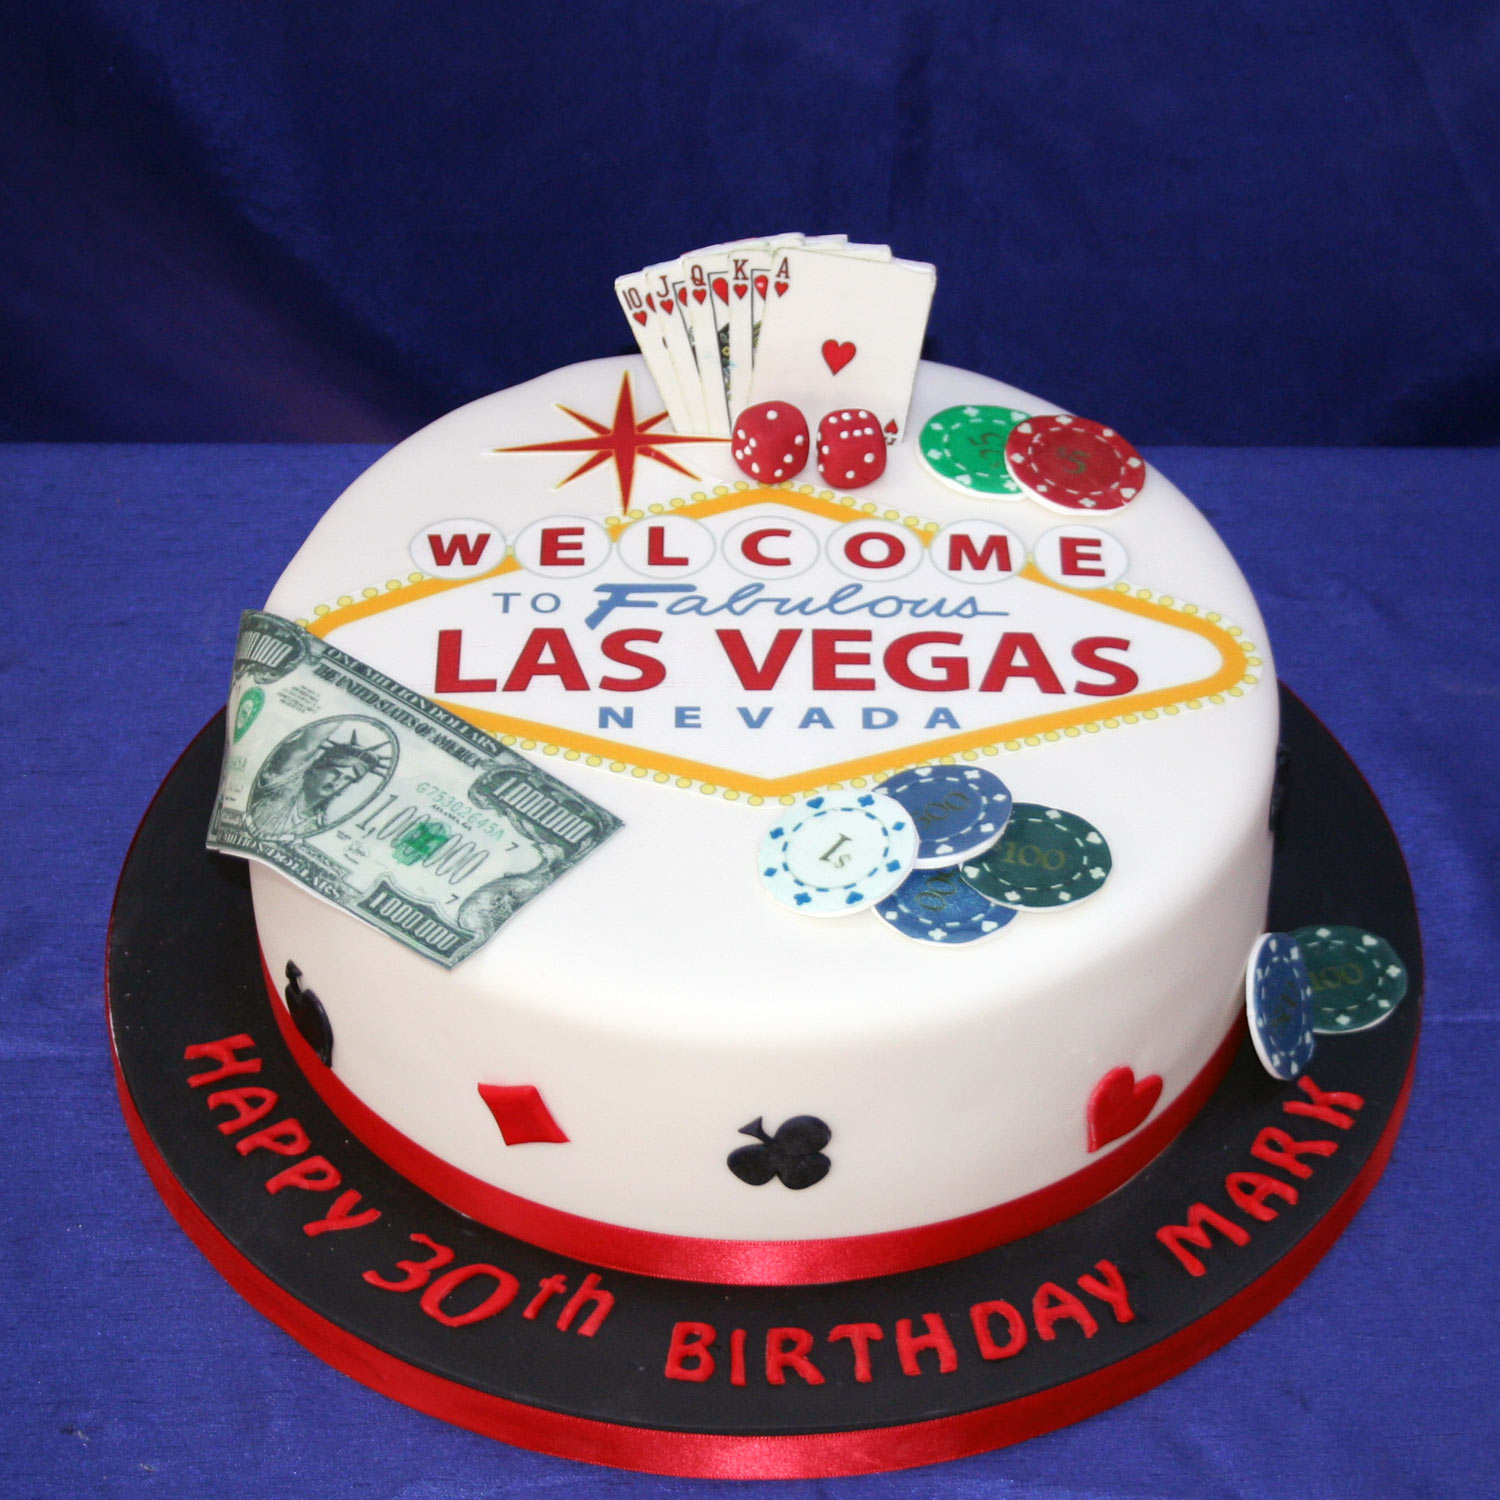 Las Vegas Birthday Cake Themed